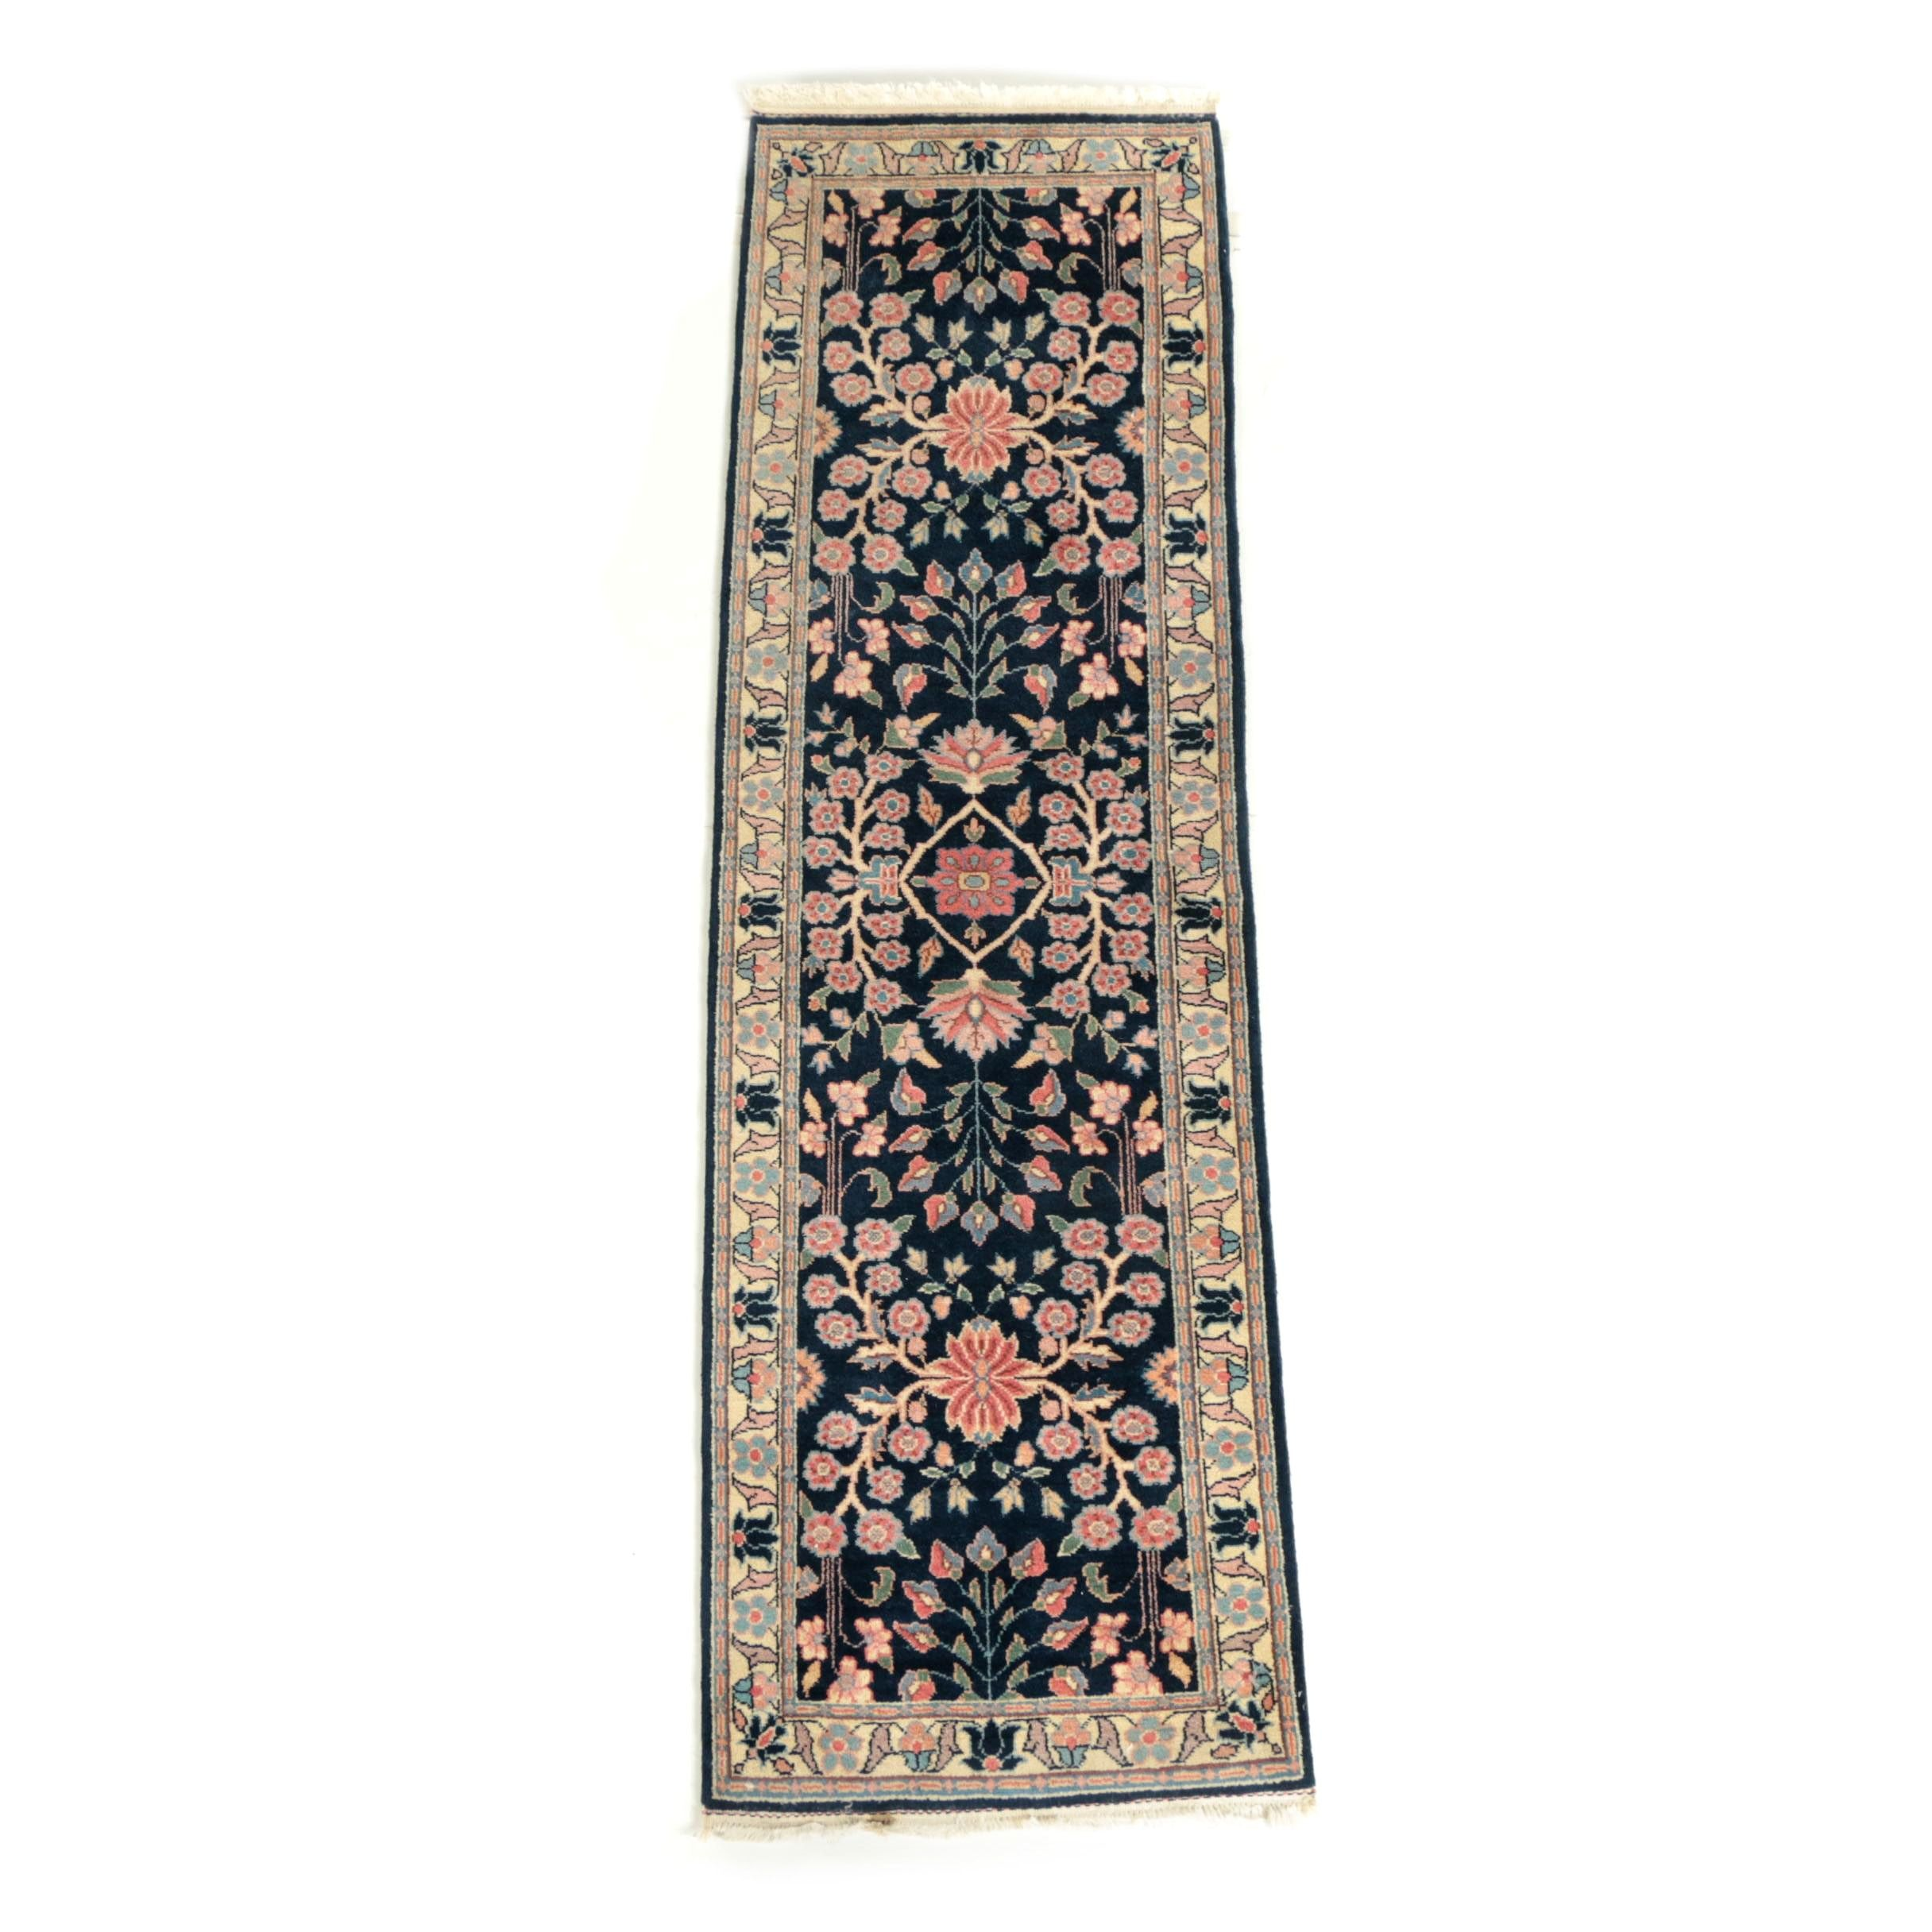 Hand-Knotted Romanian-Persian Carpet Runner